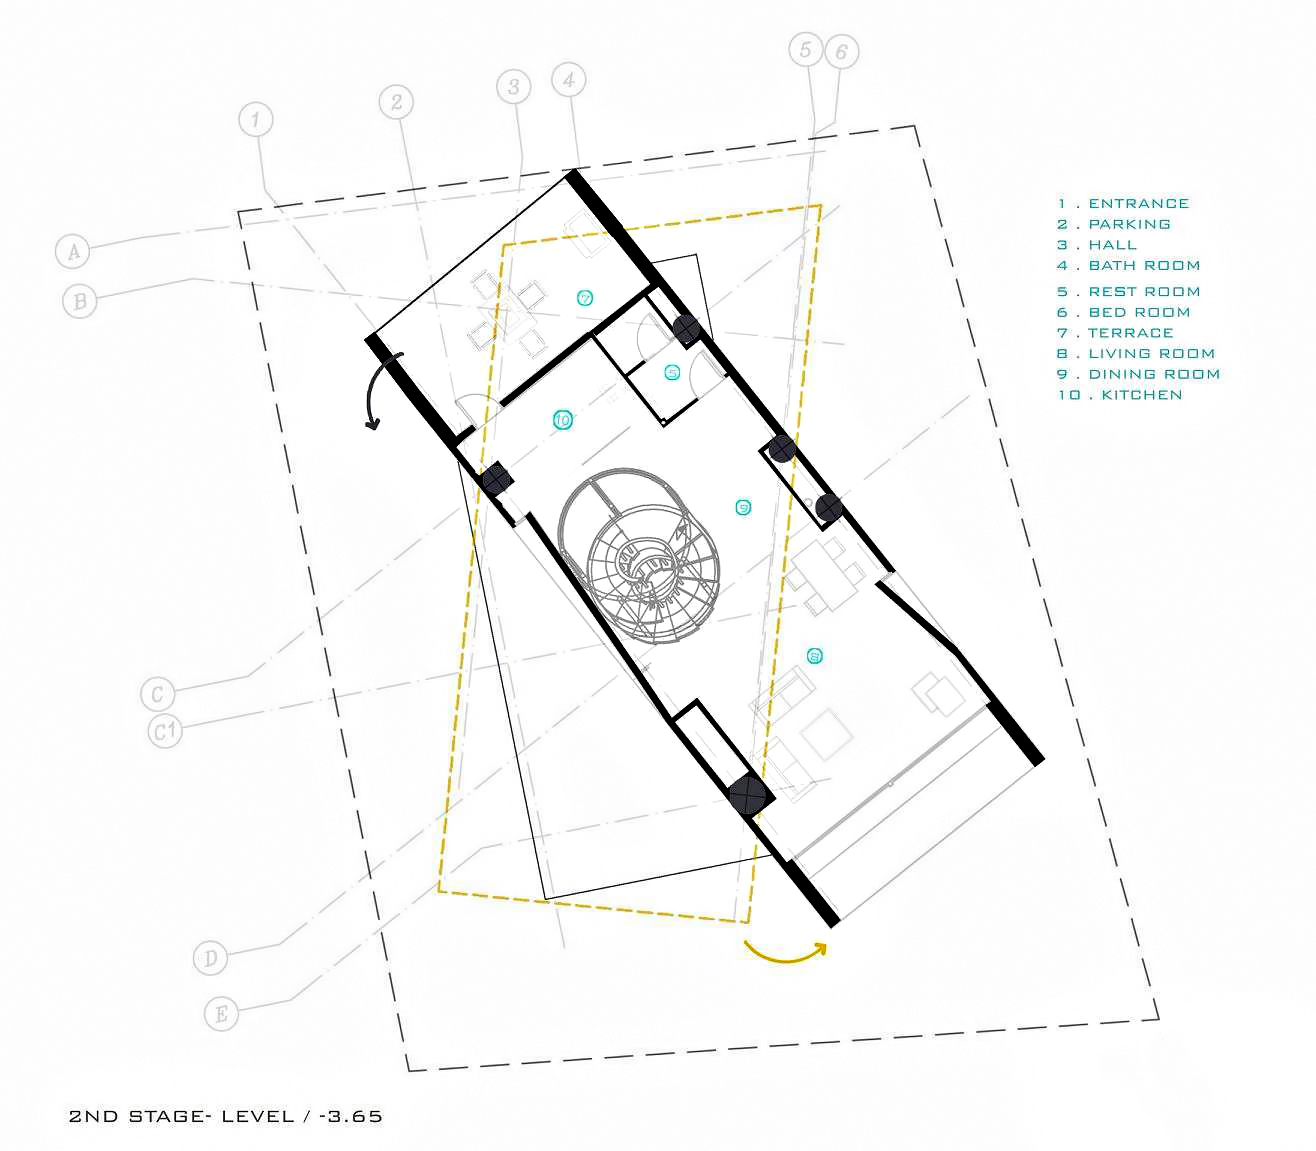 Second Level Floor Plan - Three Views House Luxury Residence - Mosha, Tehran, Iran